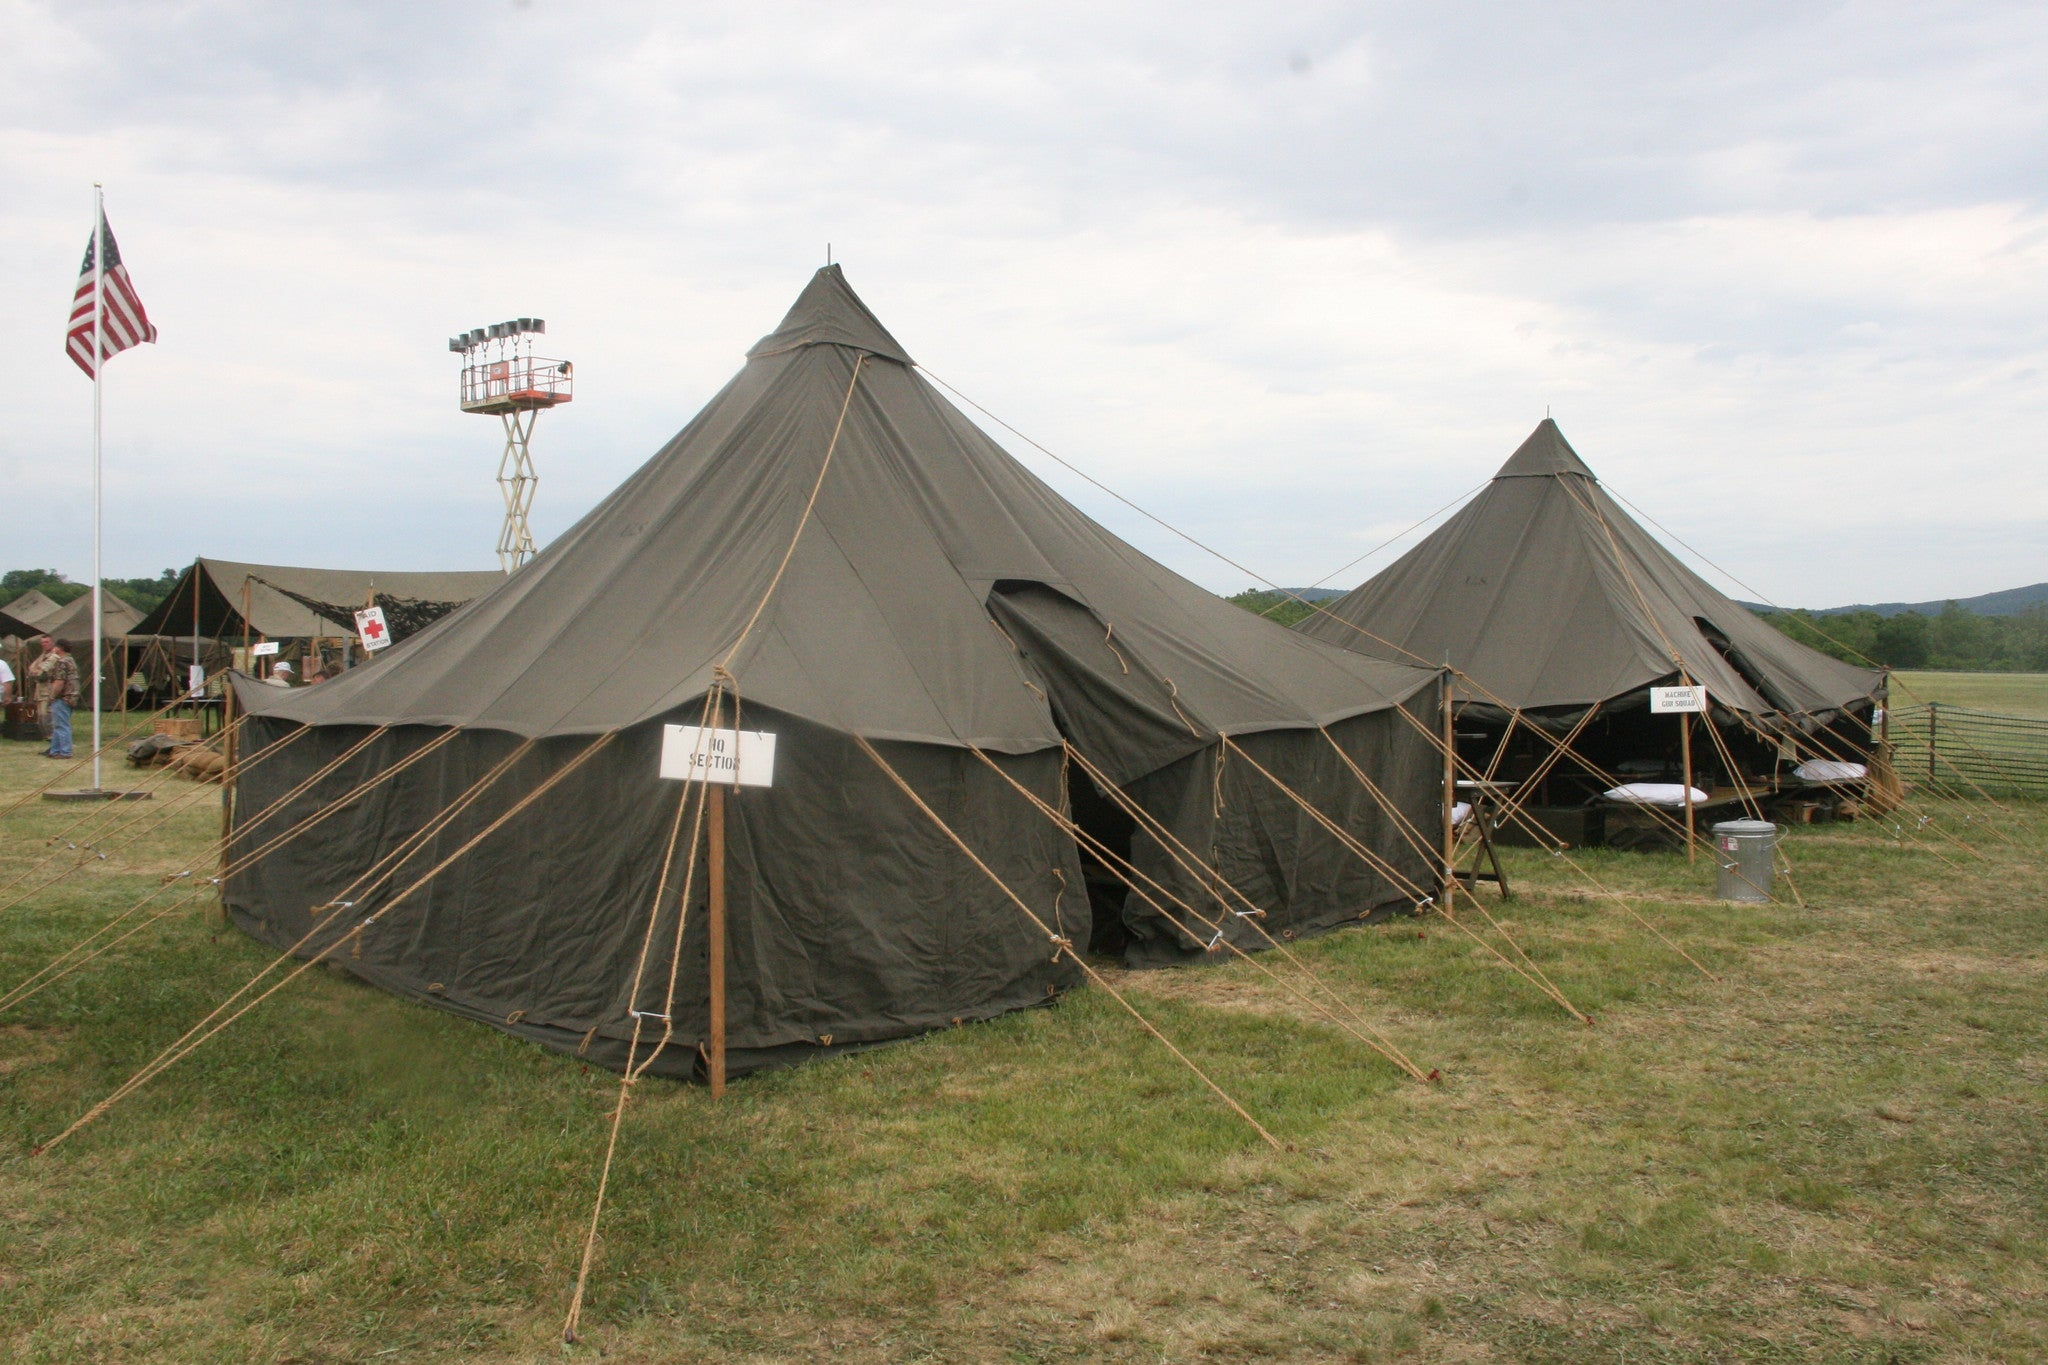 Tent Pyramidal M1934 OD (No Stakes or poles) & Tent Pyramidal M1934 OD (No Stakes or poles) u2013 WWII Impressions Inc